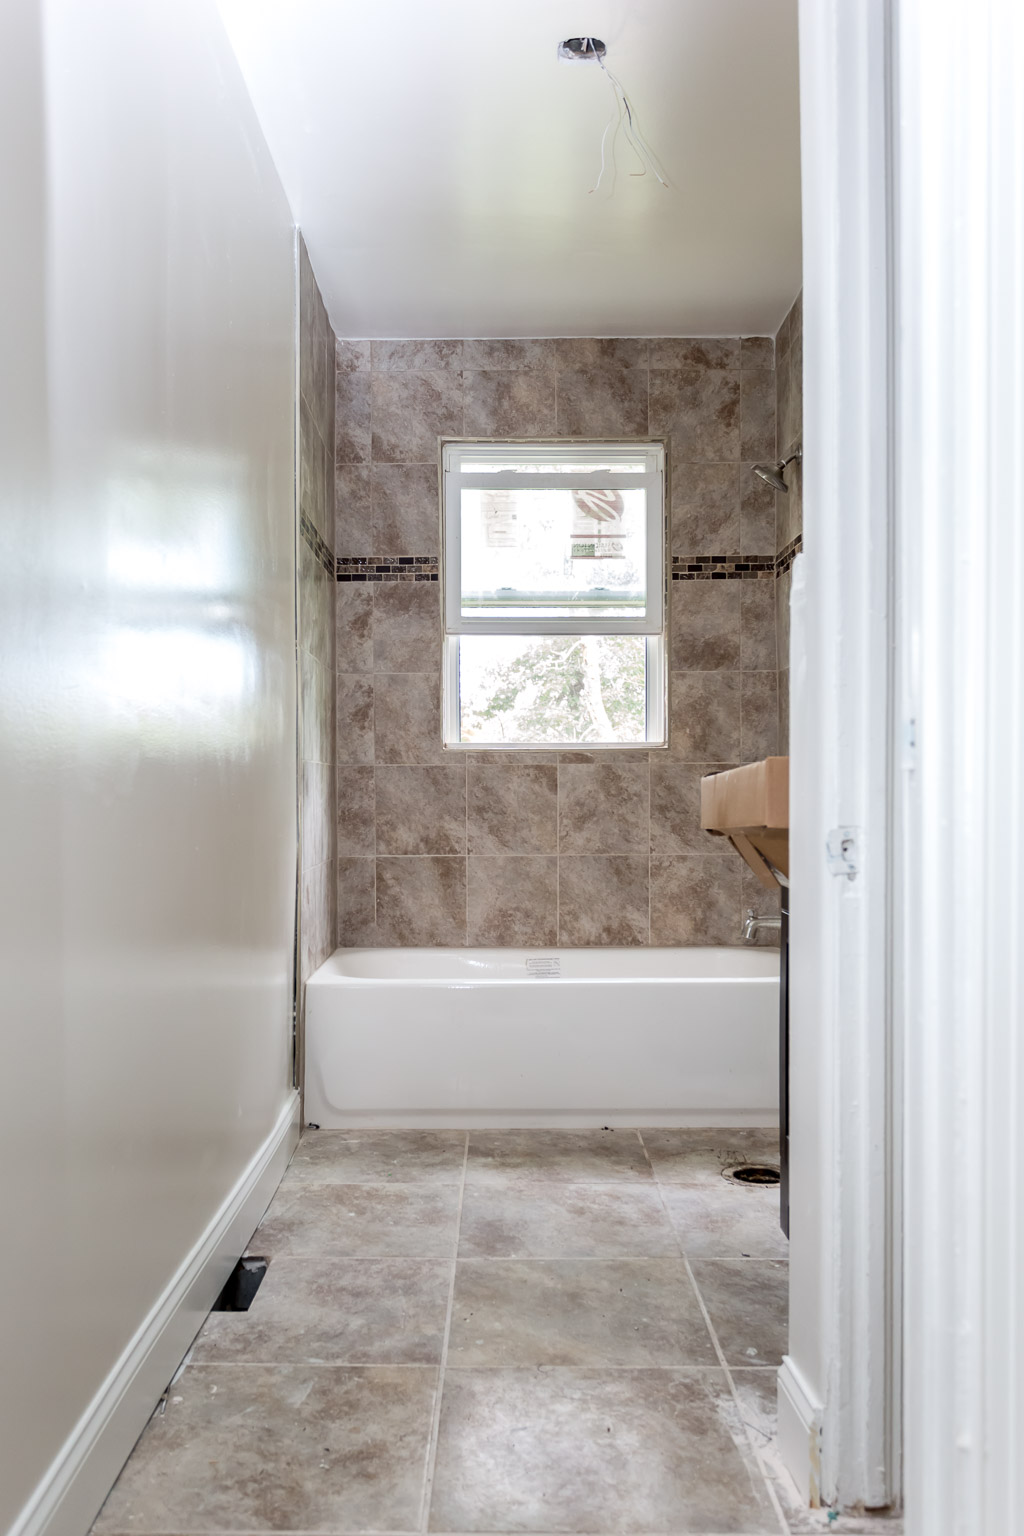 This is the bathroom now, after reframing it, re-tiling it, and replacing the tub.